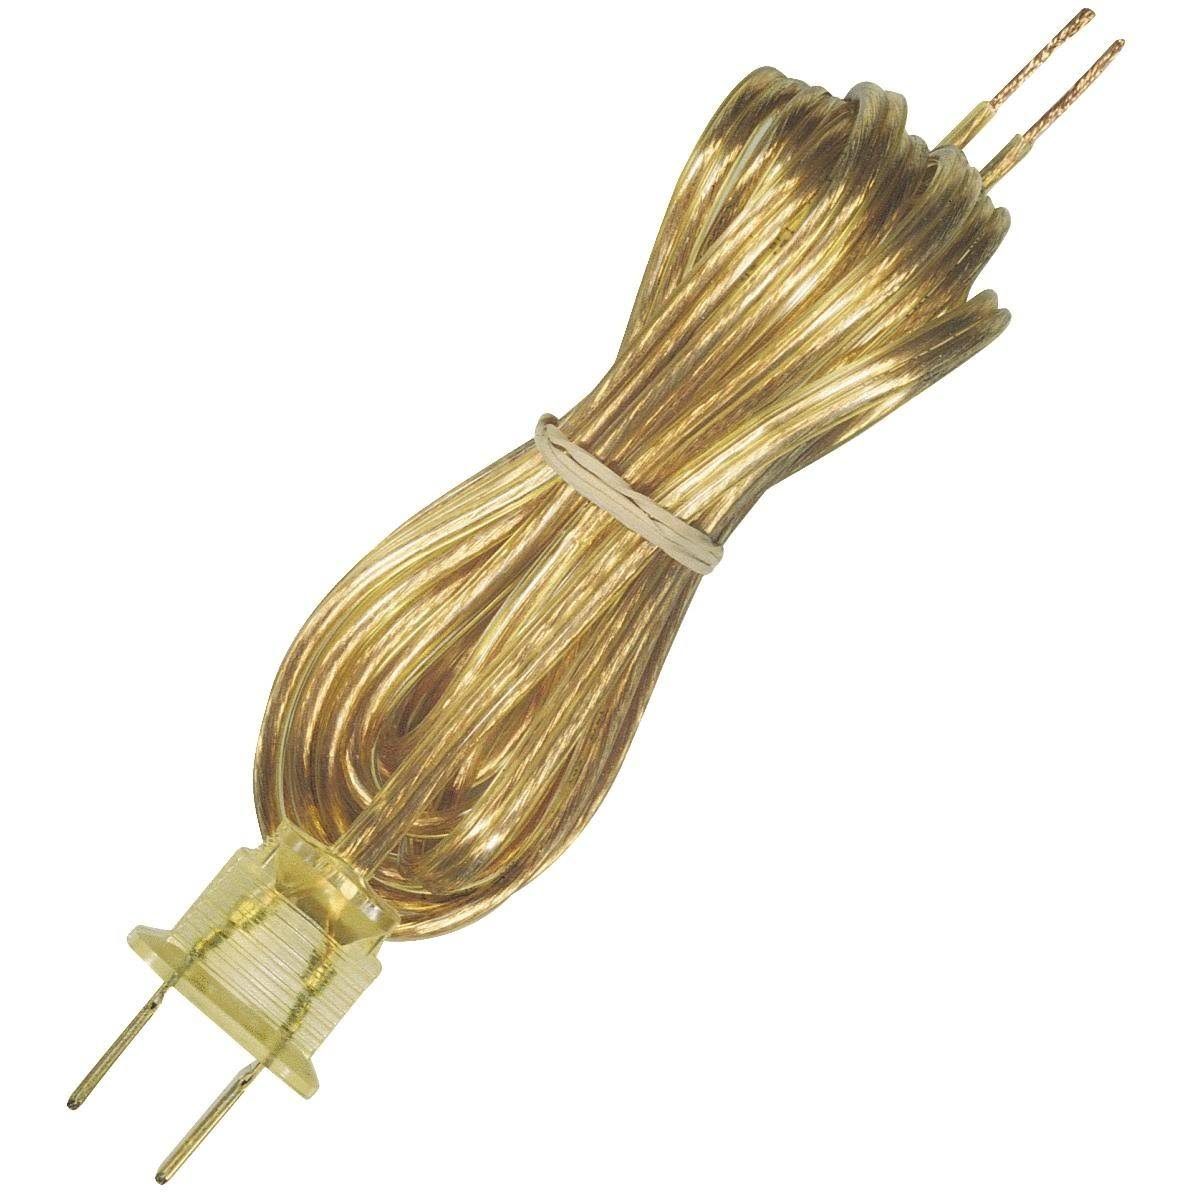 Westinghouse Lighting Corp Lamp Cord Set - Gold, 8'